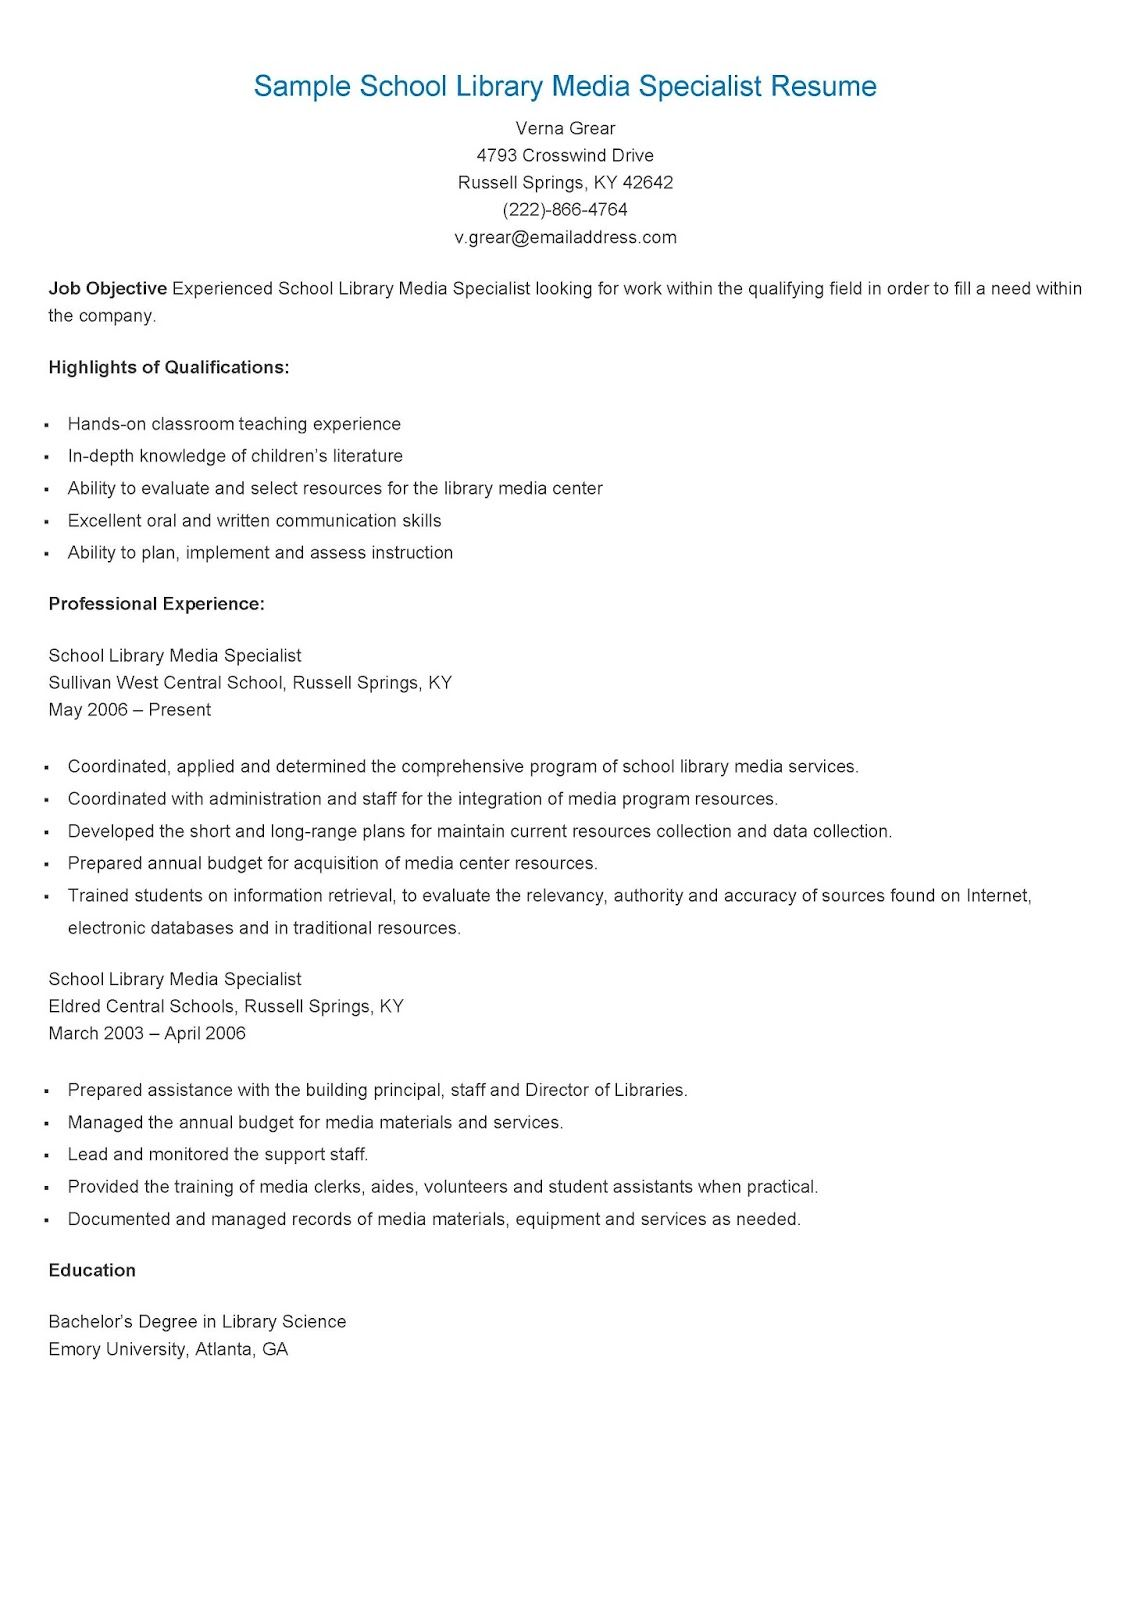 sample school library media specialist resume